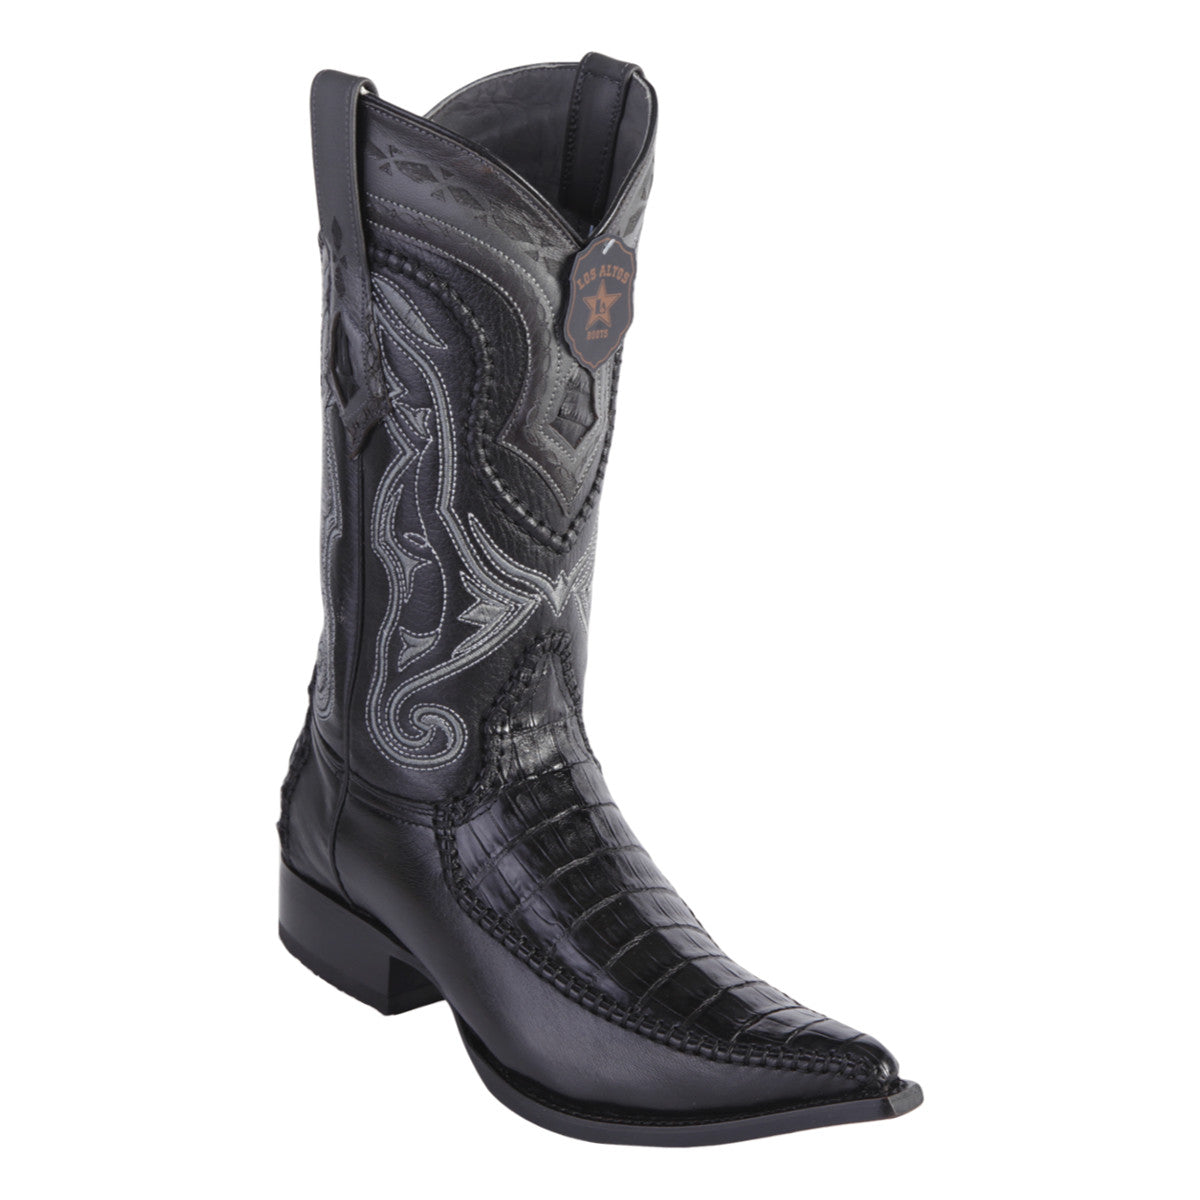 Los Altos Boots 3x Toe Stitched Caiman Belly w/Deer